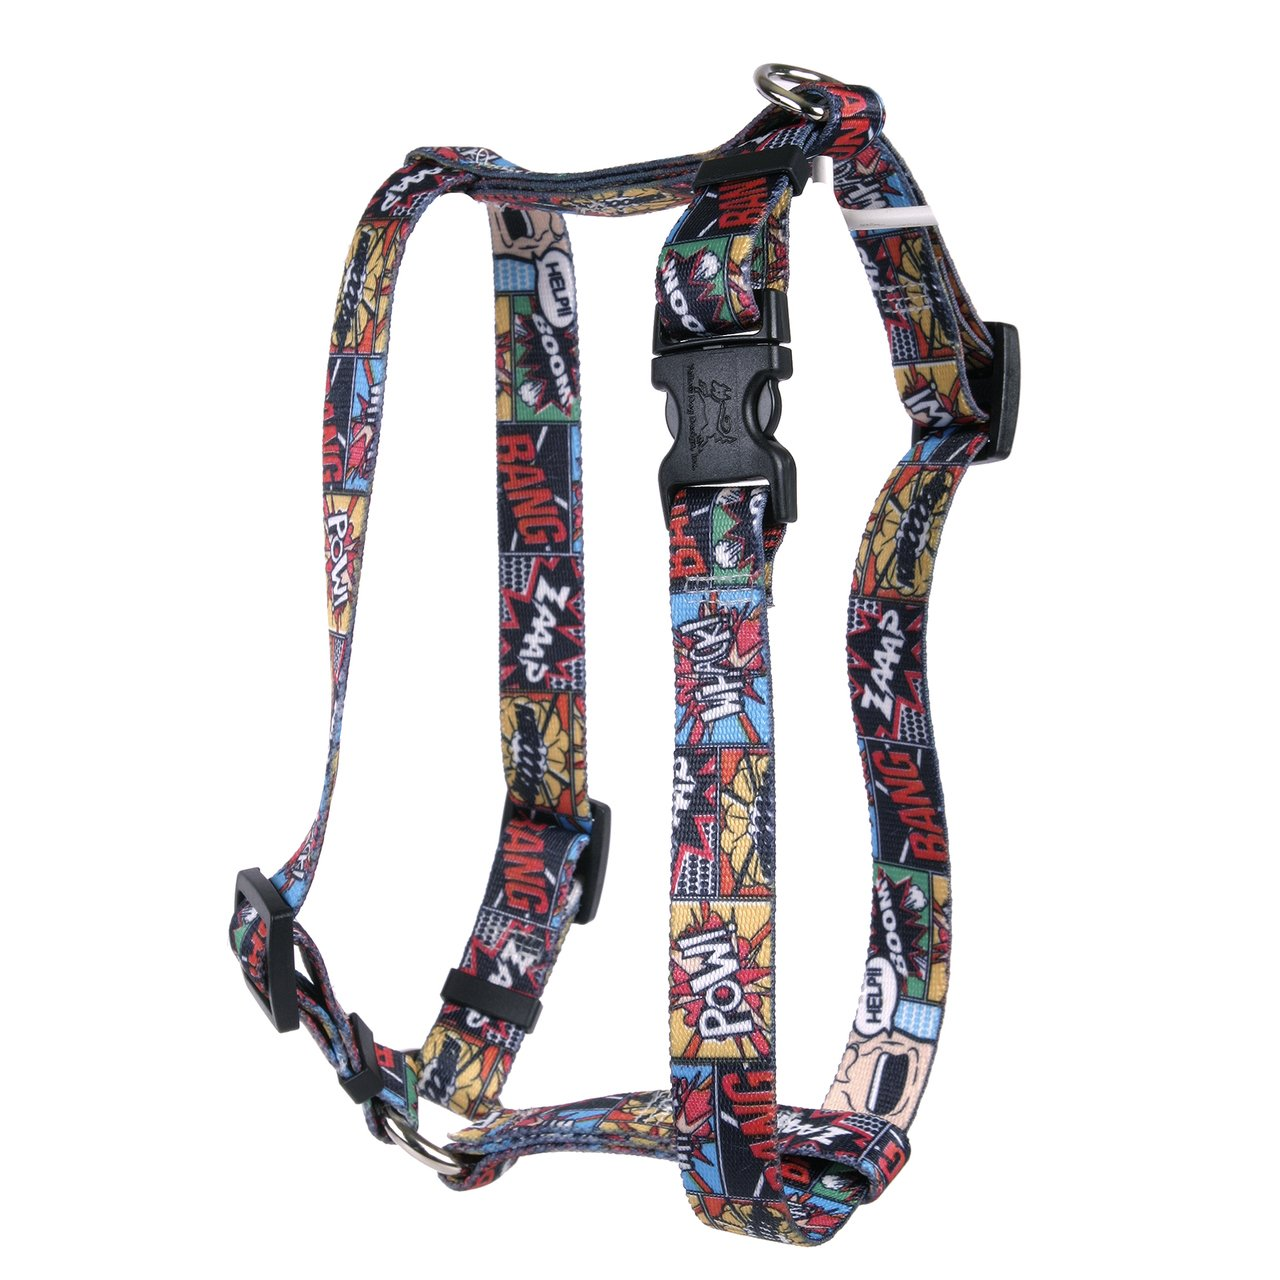 Yellow Dog Design Vintage Comics Roman Style H Dog Harness-Large-1'' and fits Chest Circumference of 20 to 28'' by Yellow Dog Design